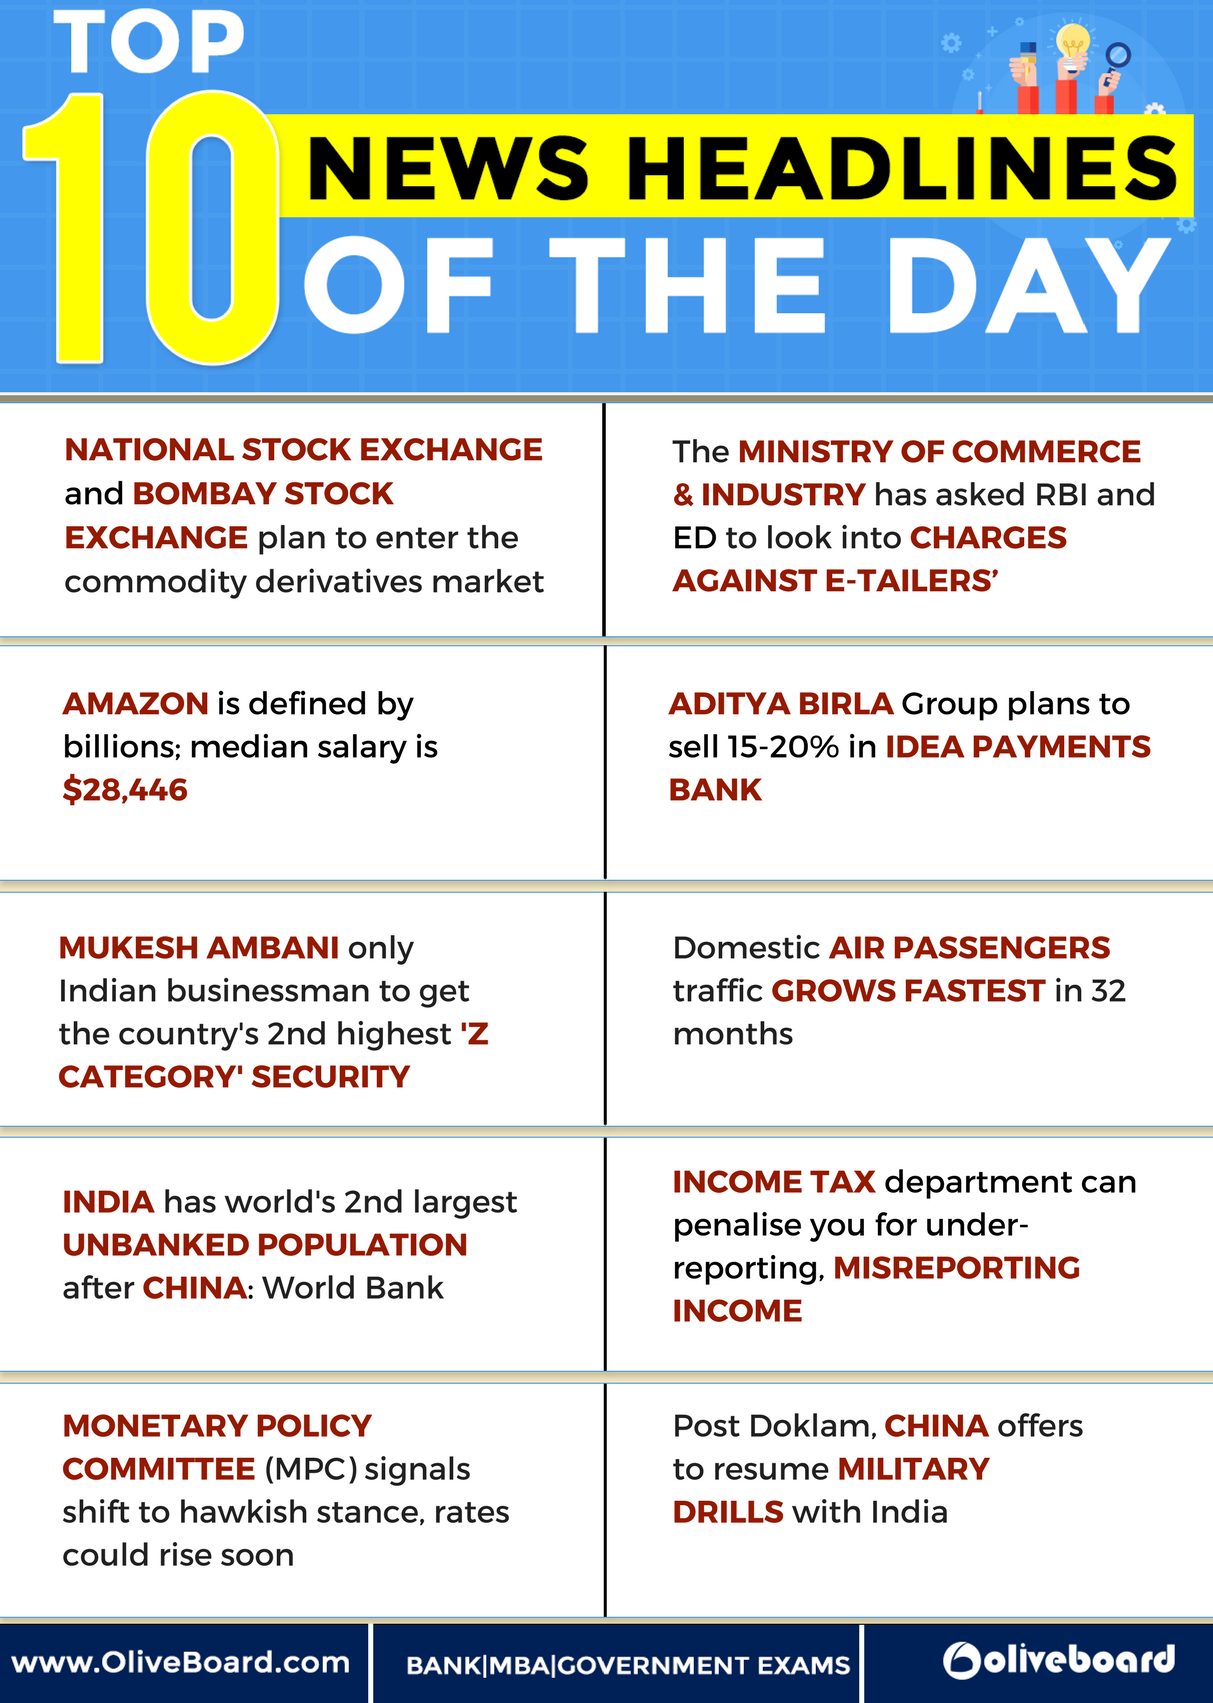 DAILY GK CURRENT AFFAIRS For 20TH APRIL